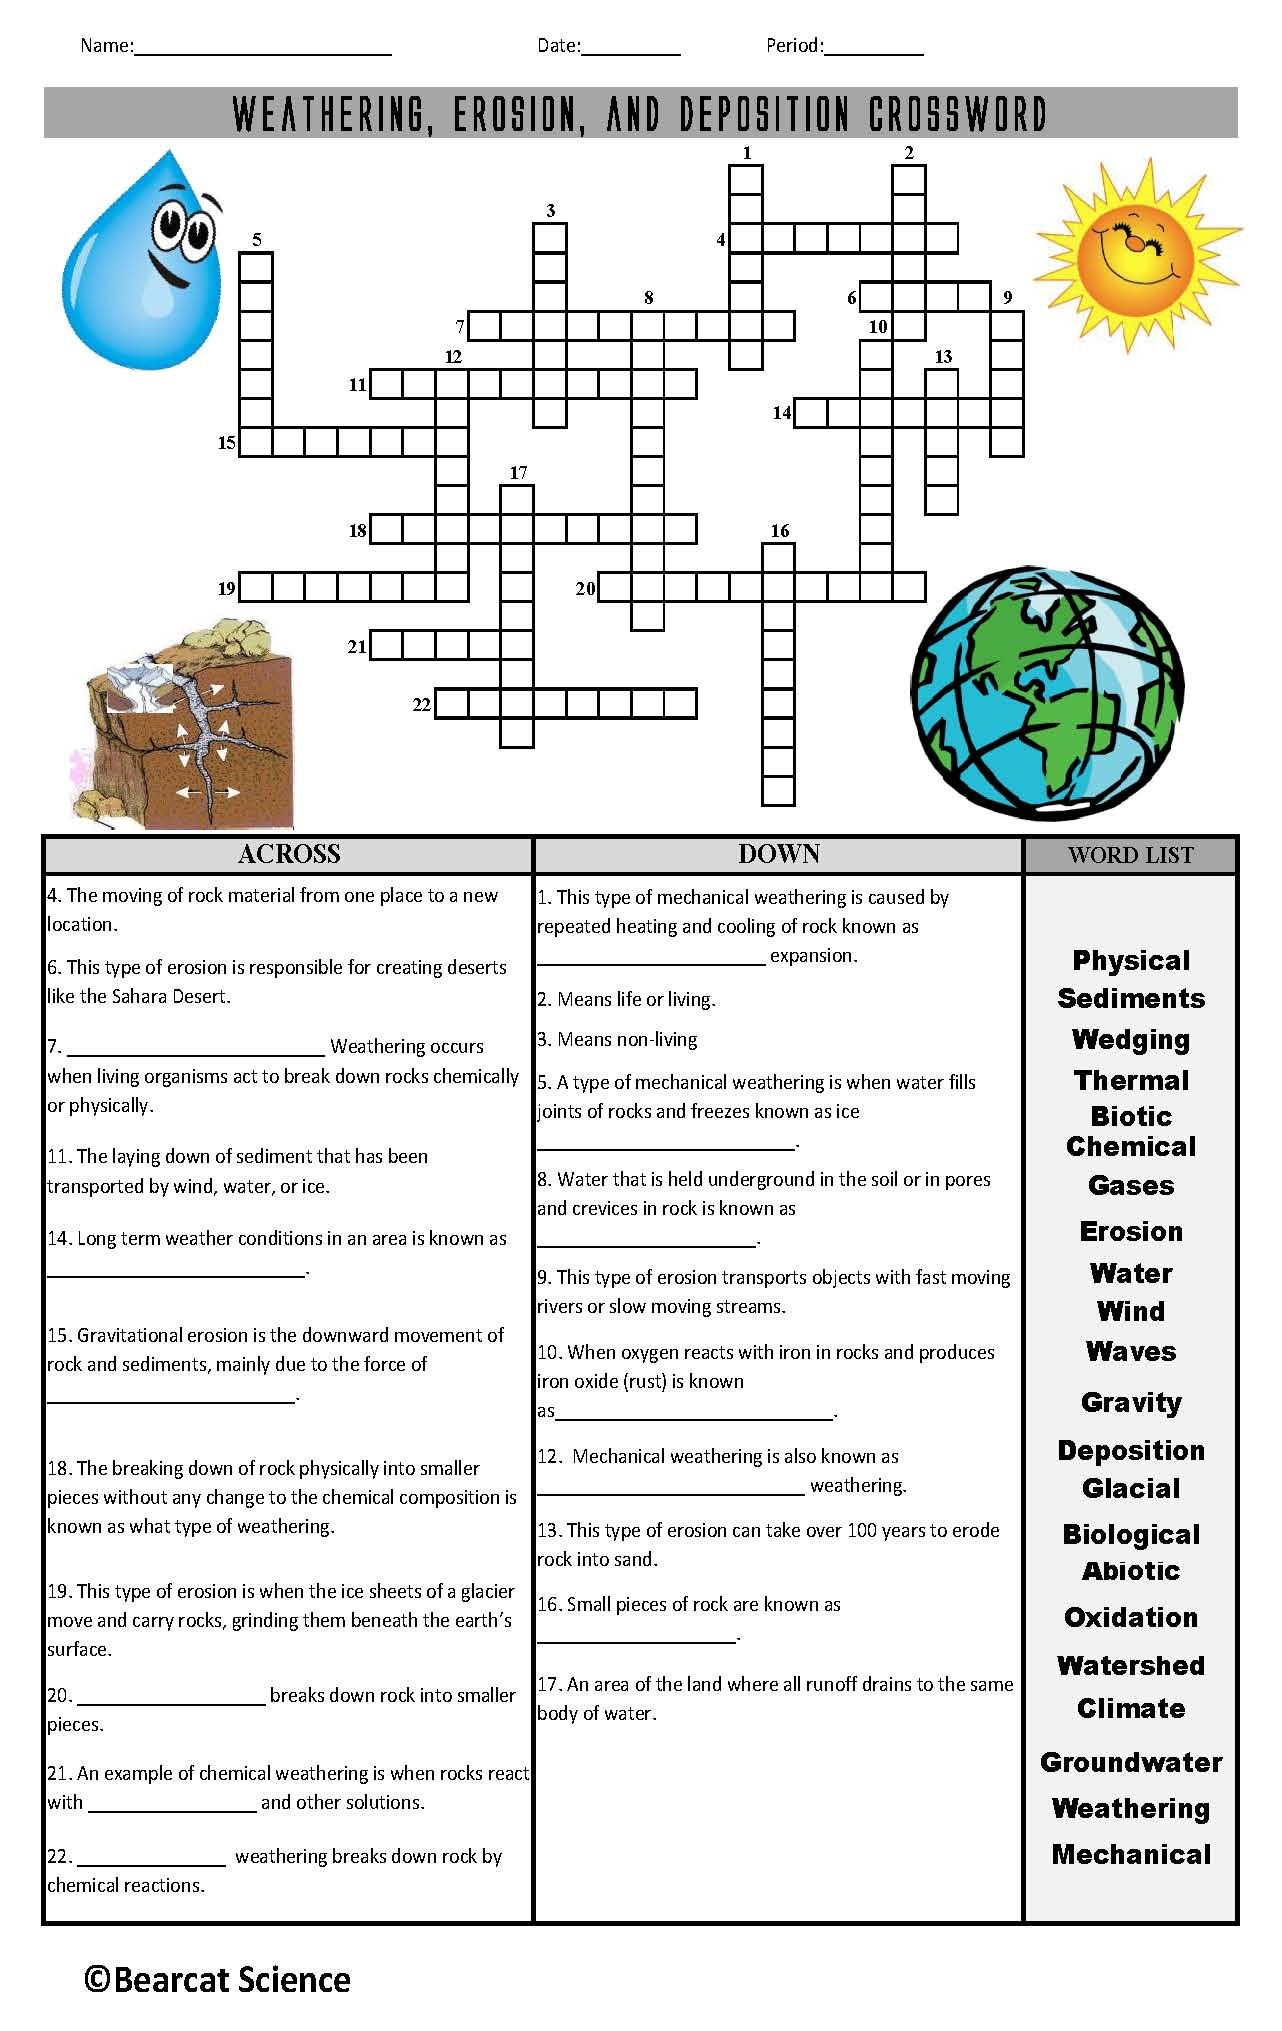 Weathering Erosion And Deposition Crossword Puzzle